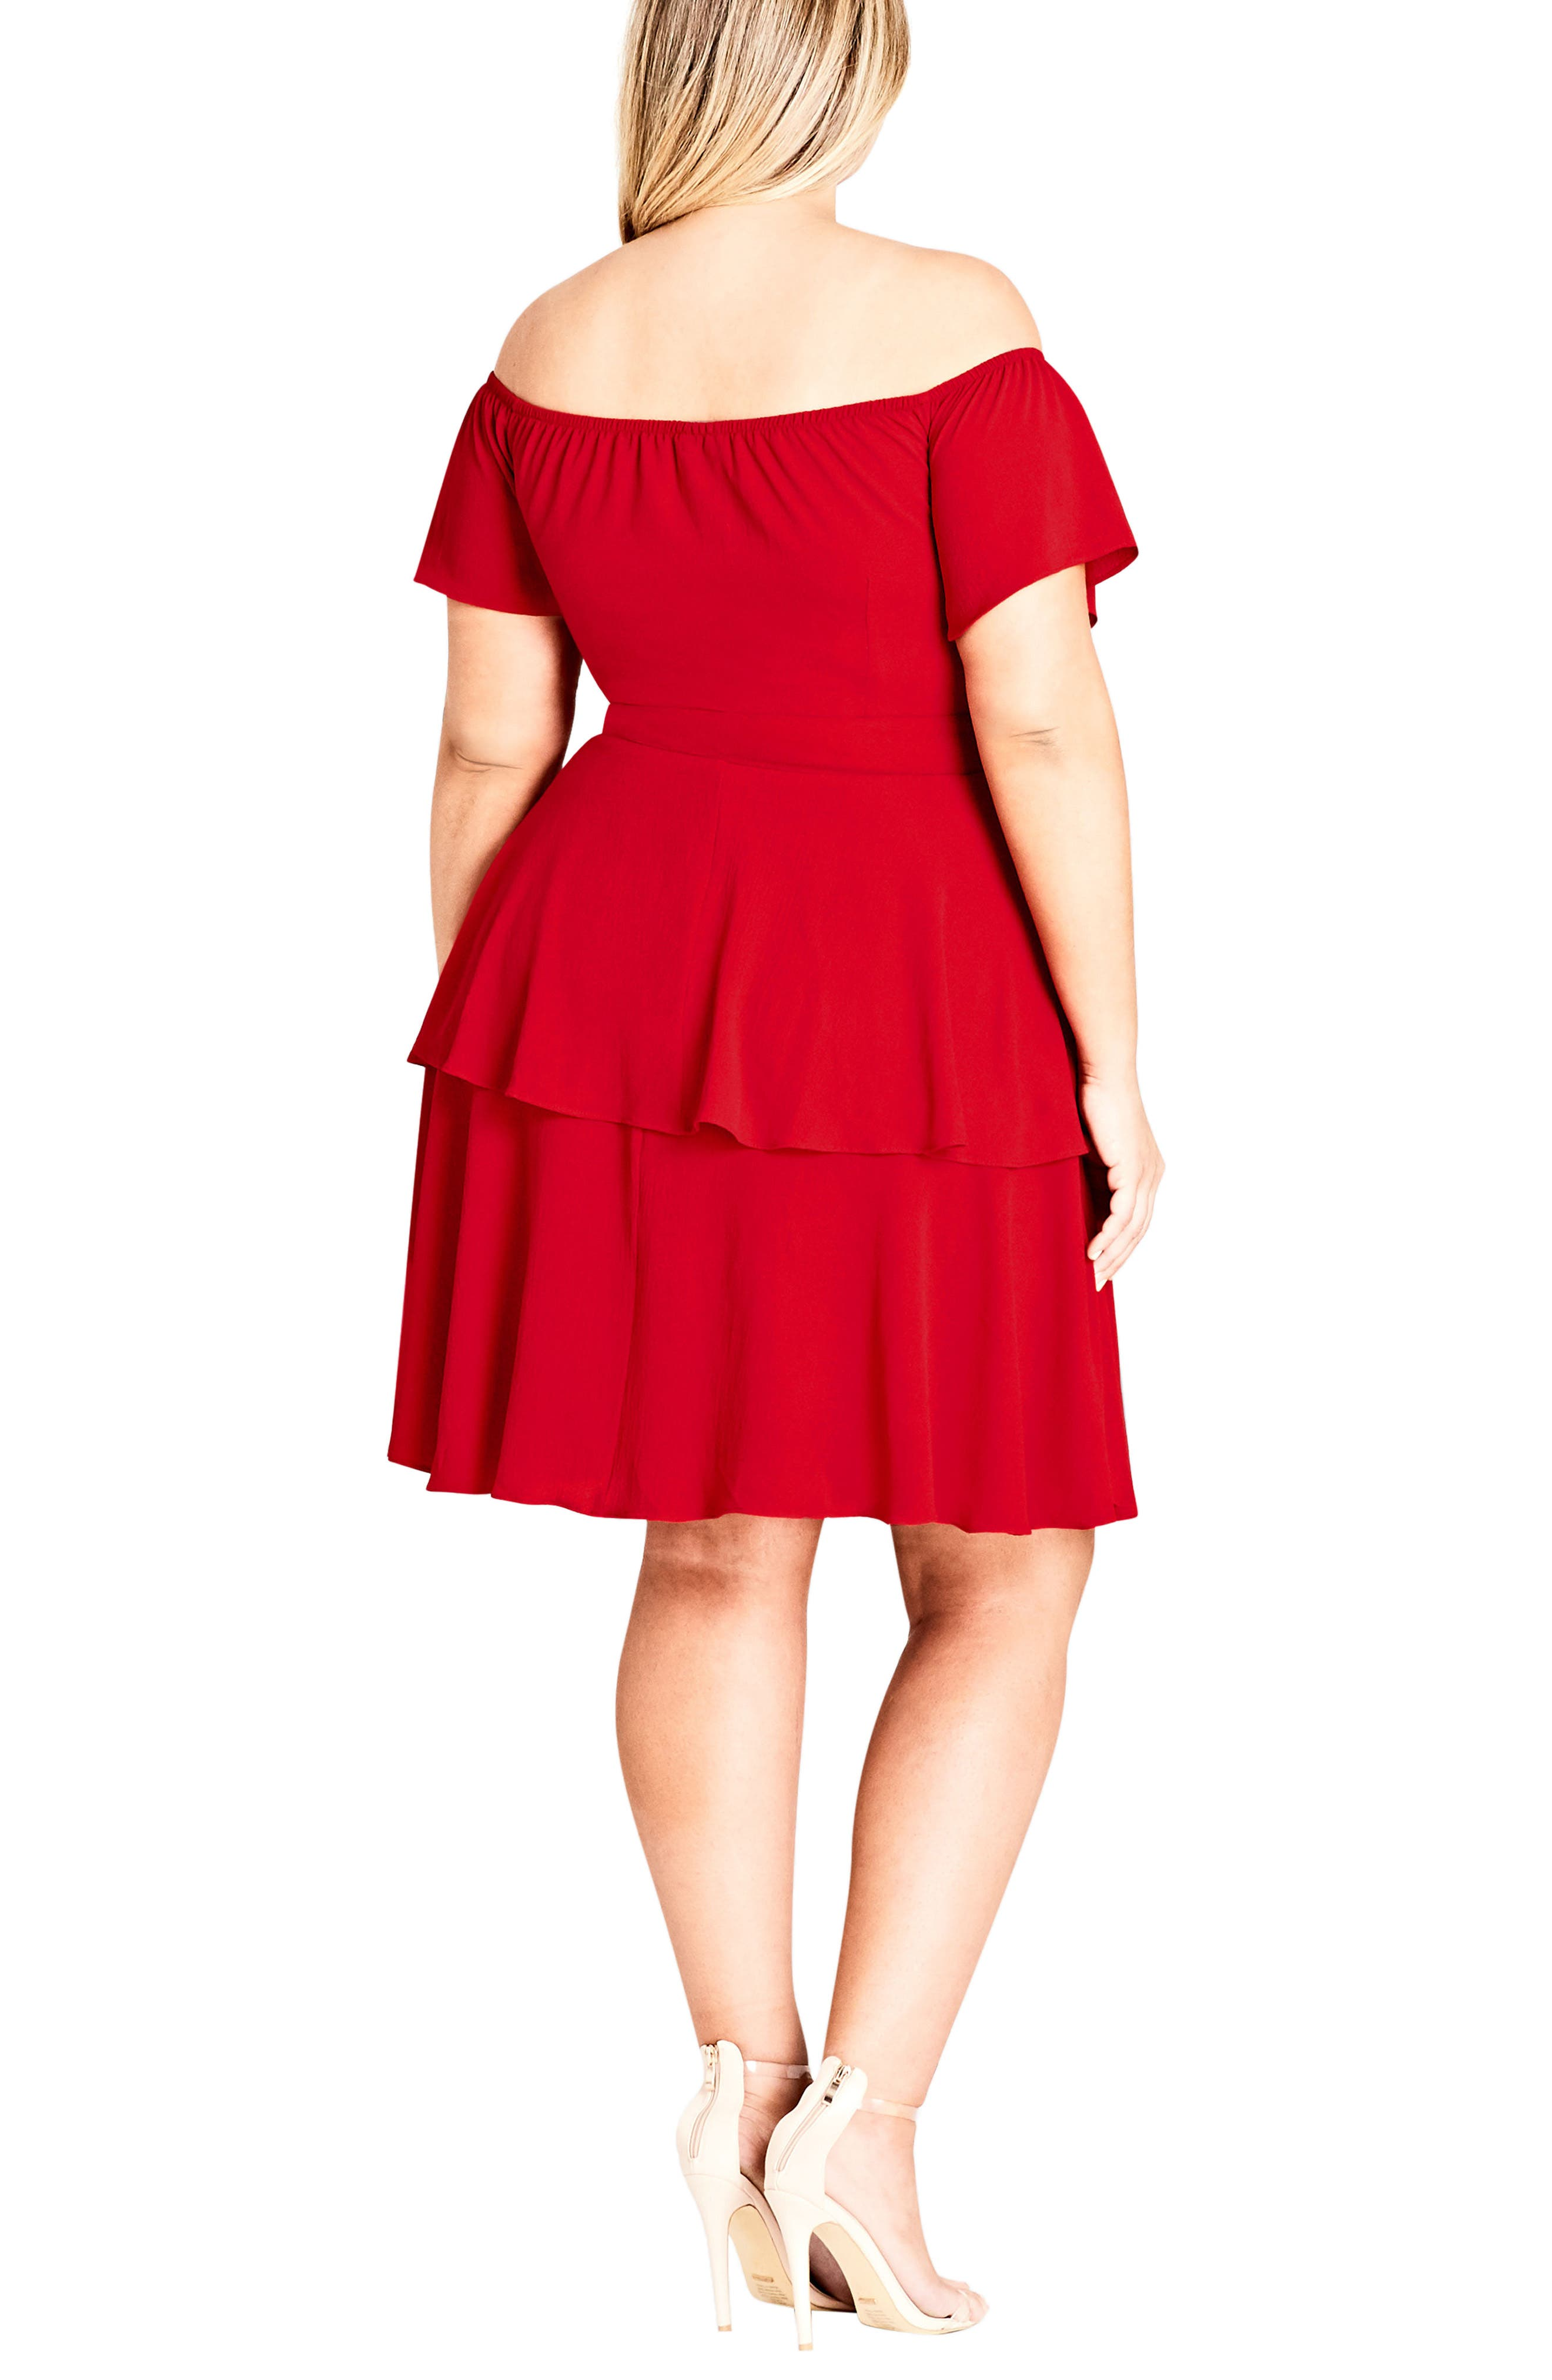 True Romance Off the Shoulder Dress,                             Alternate thumbnail 2, color,                             Red